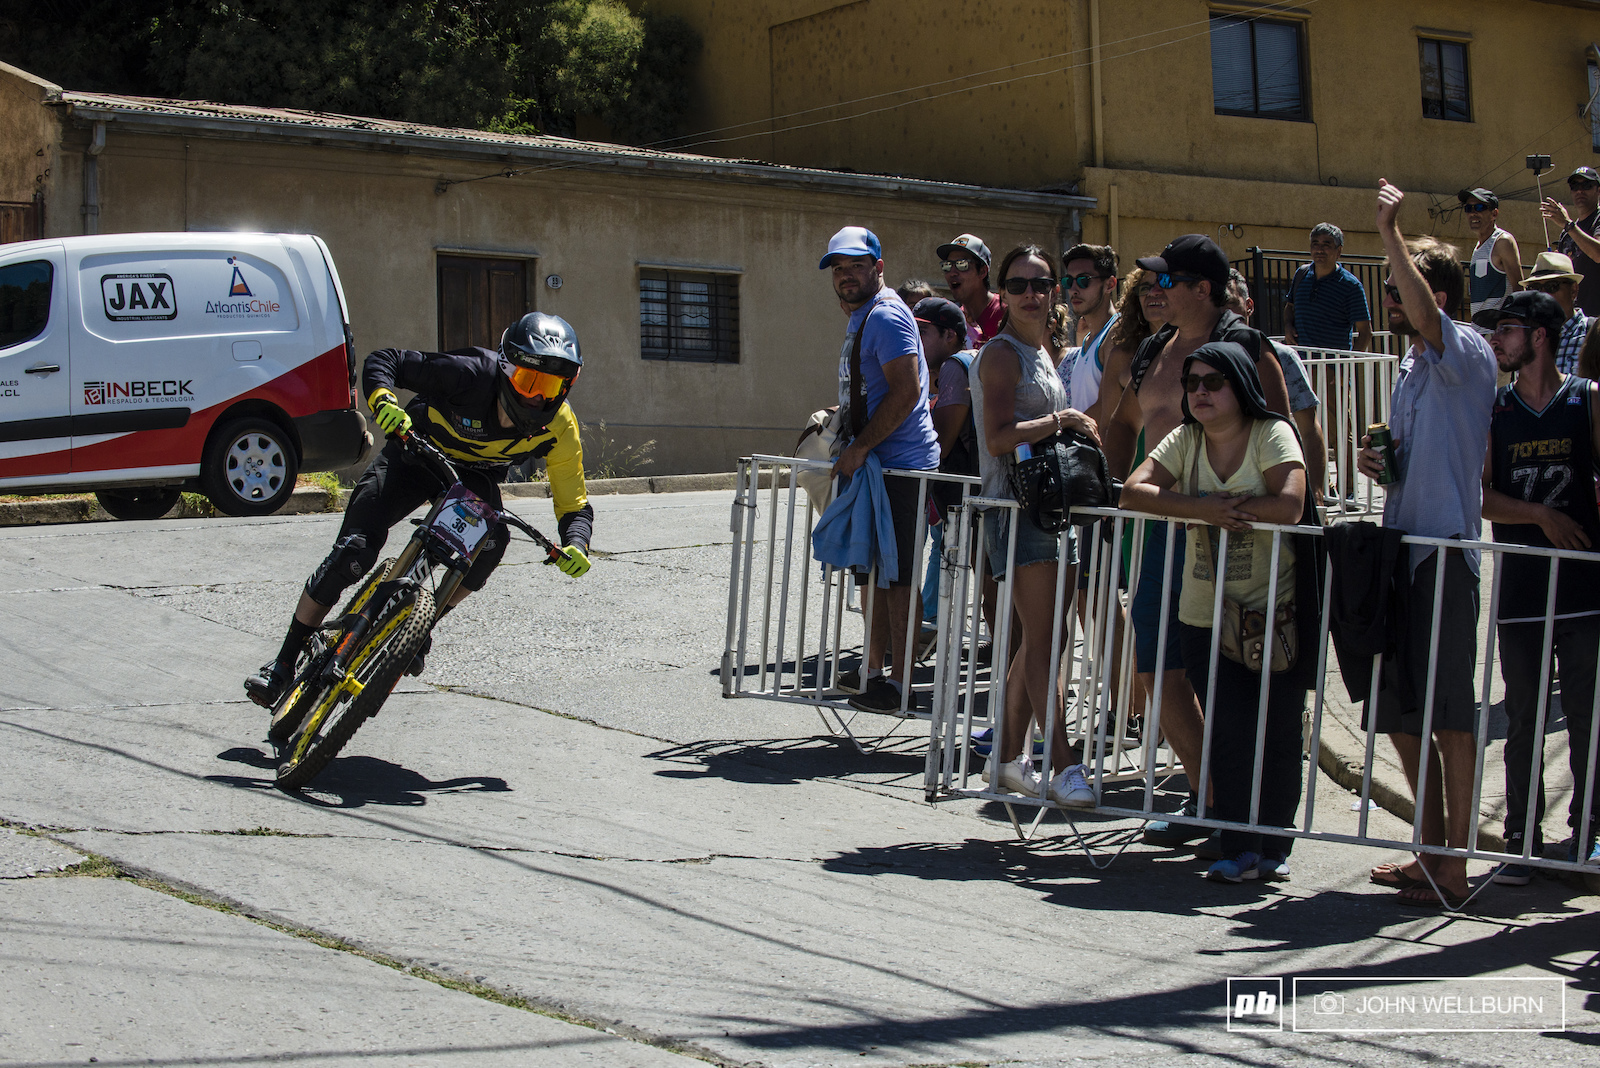 Frenchman Hebert Ambroise keeping his speed around the corner in prep for the giant bus gap.